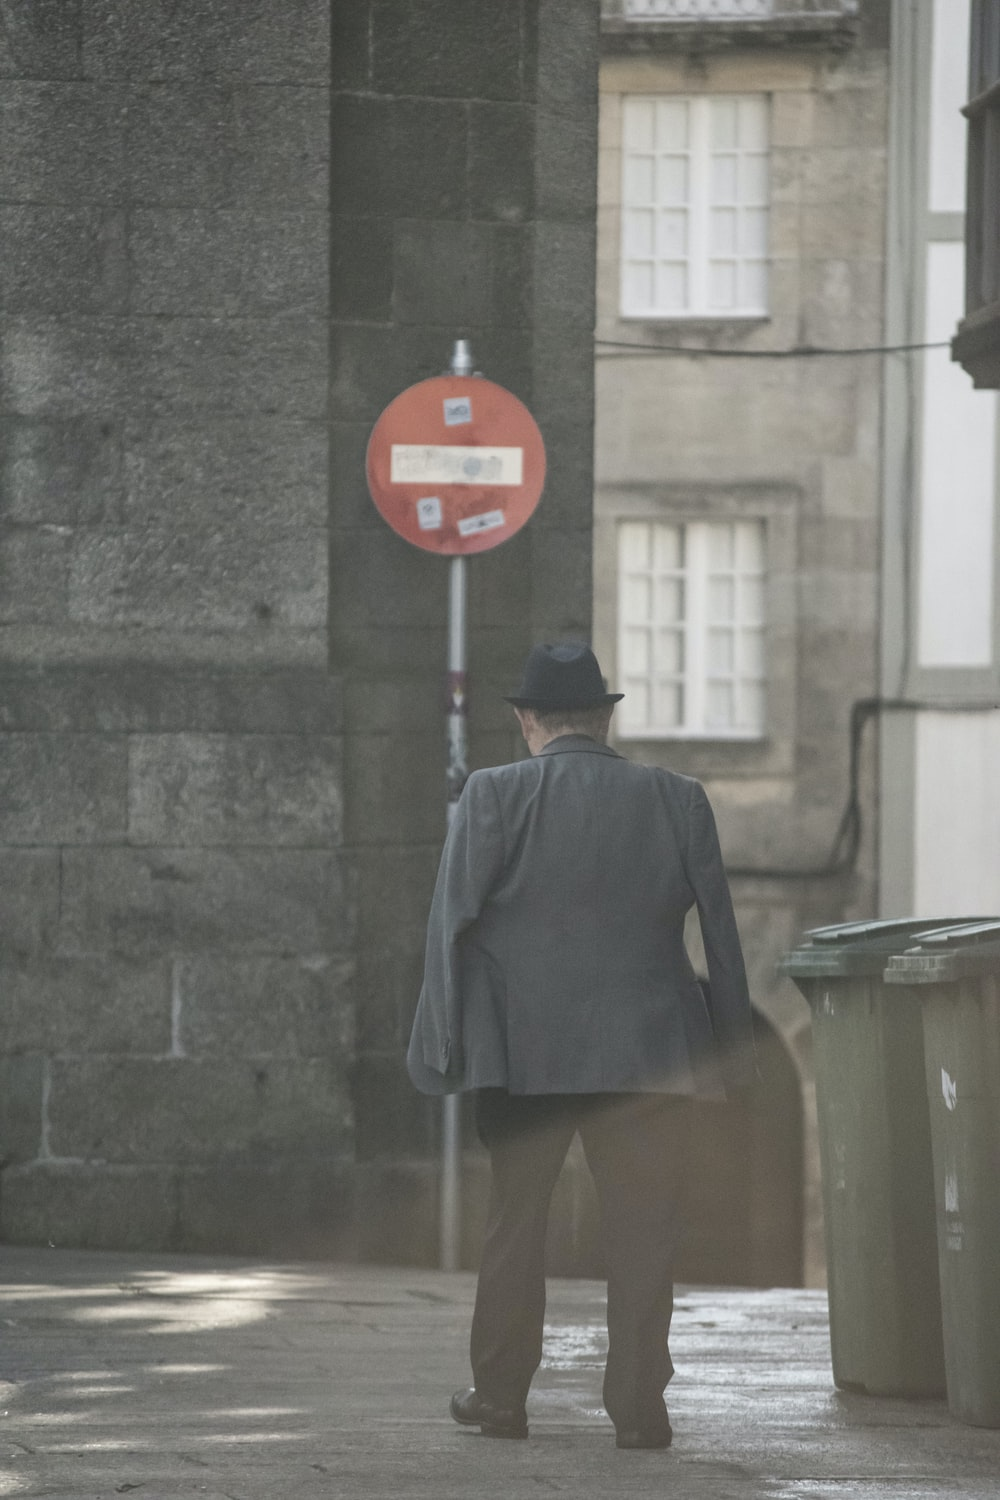 man in black coat standing near red stop sign